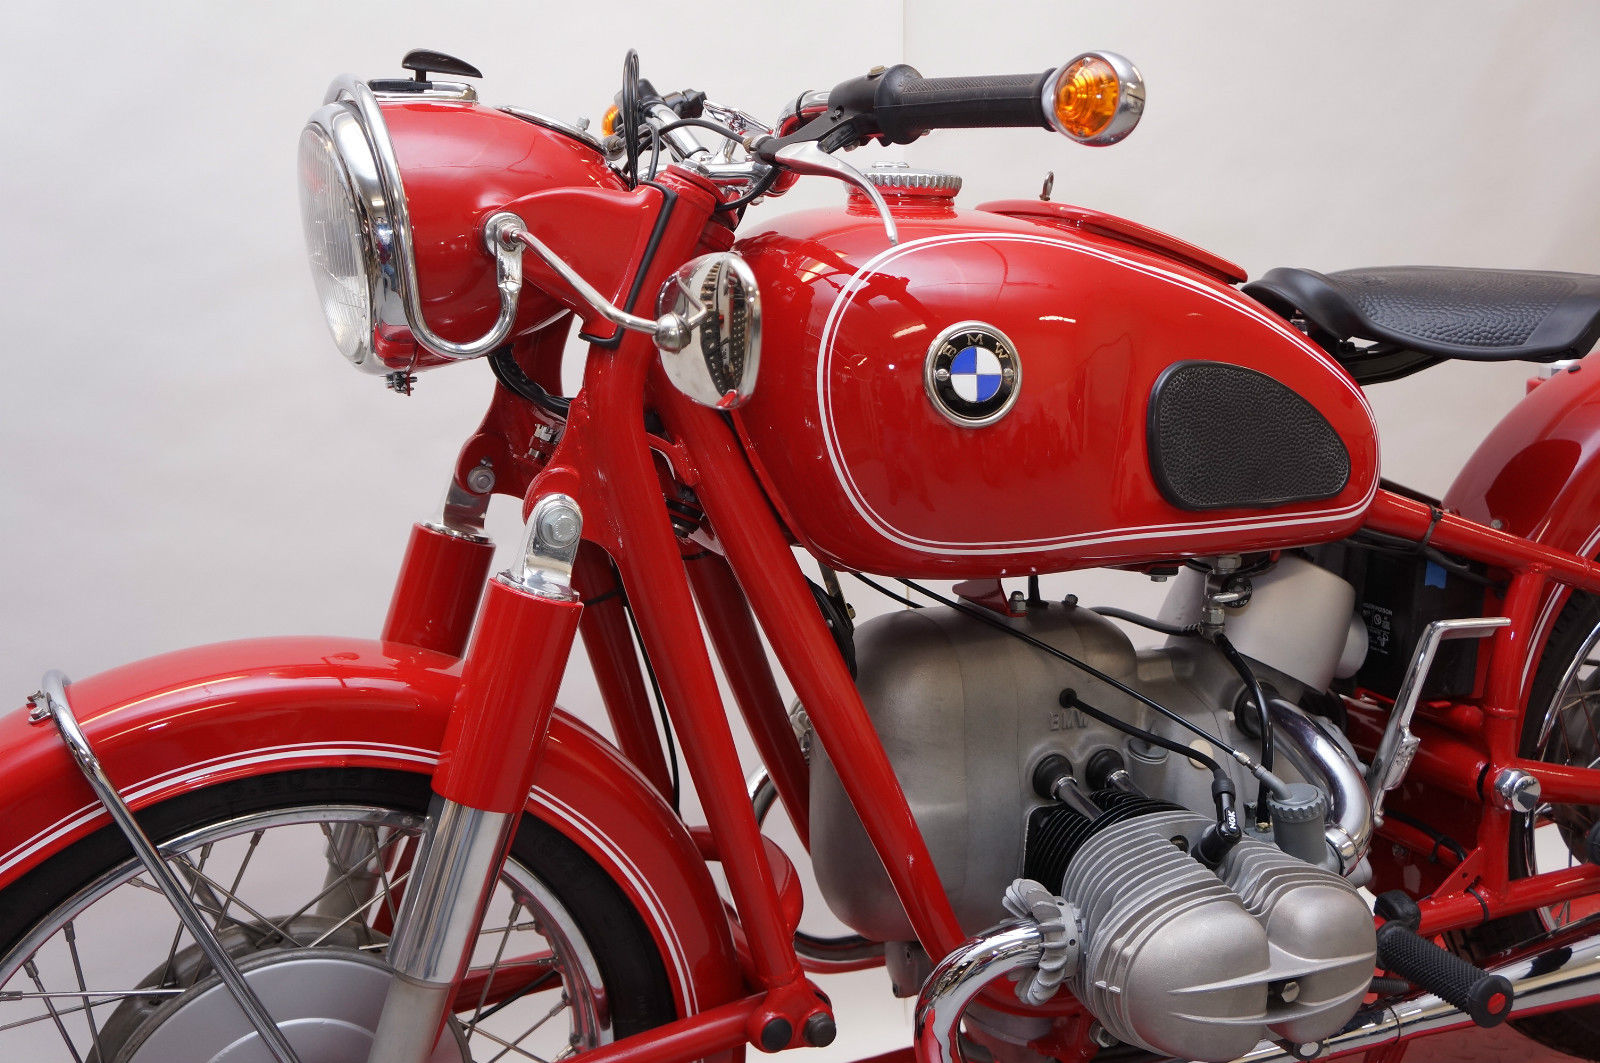 Restored Bmw R69s 1966 Photographs At Classic Bikes Restored Bikes Restored